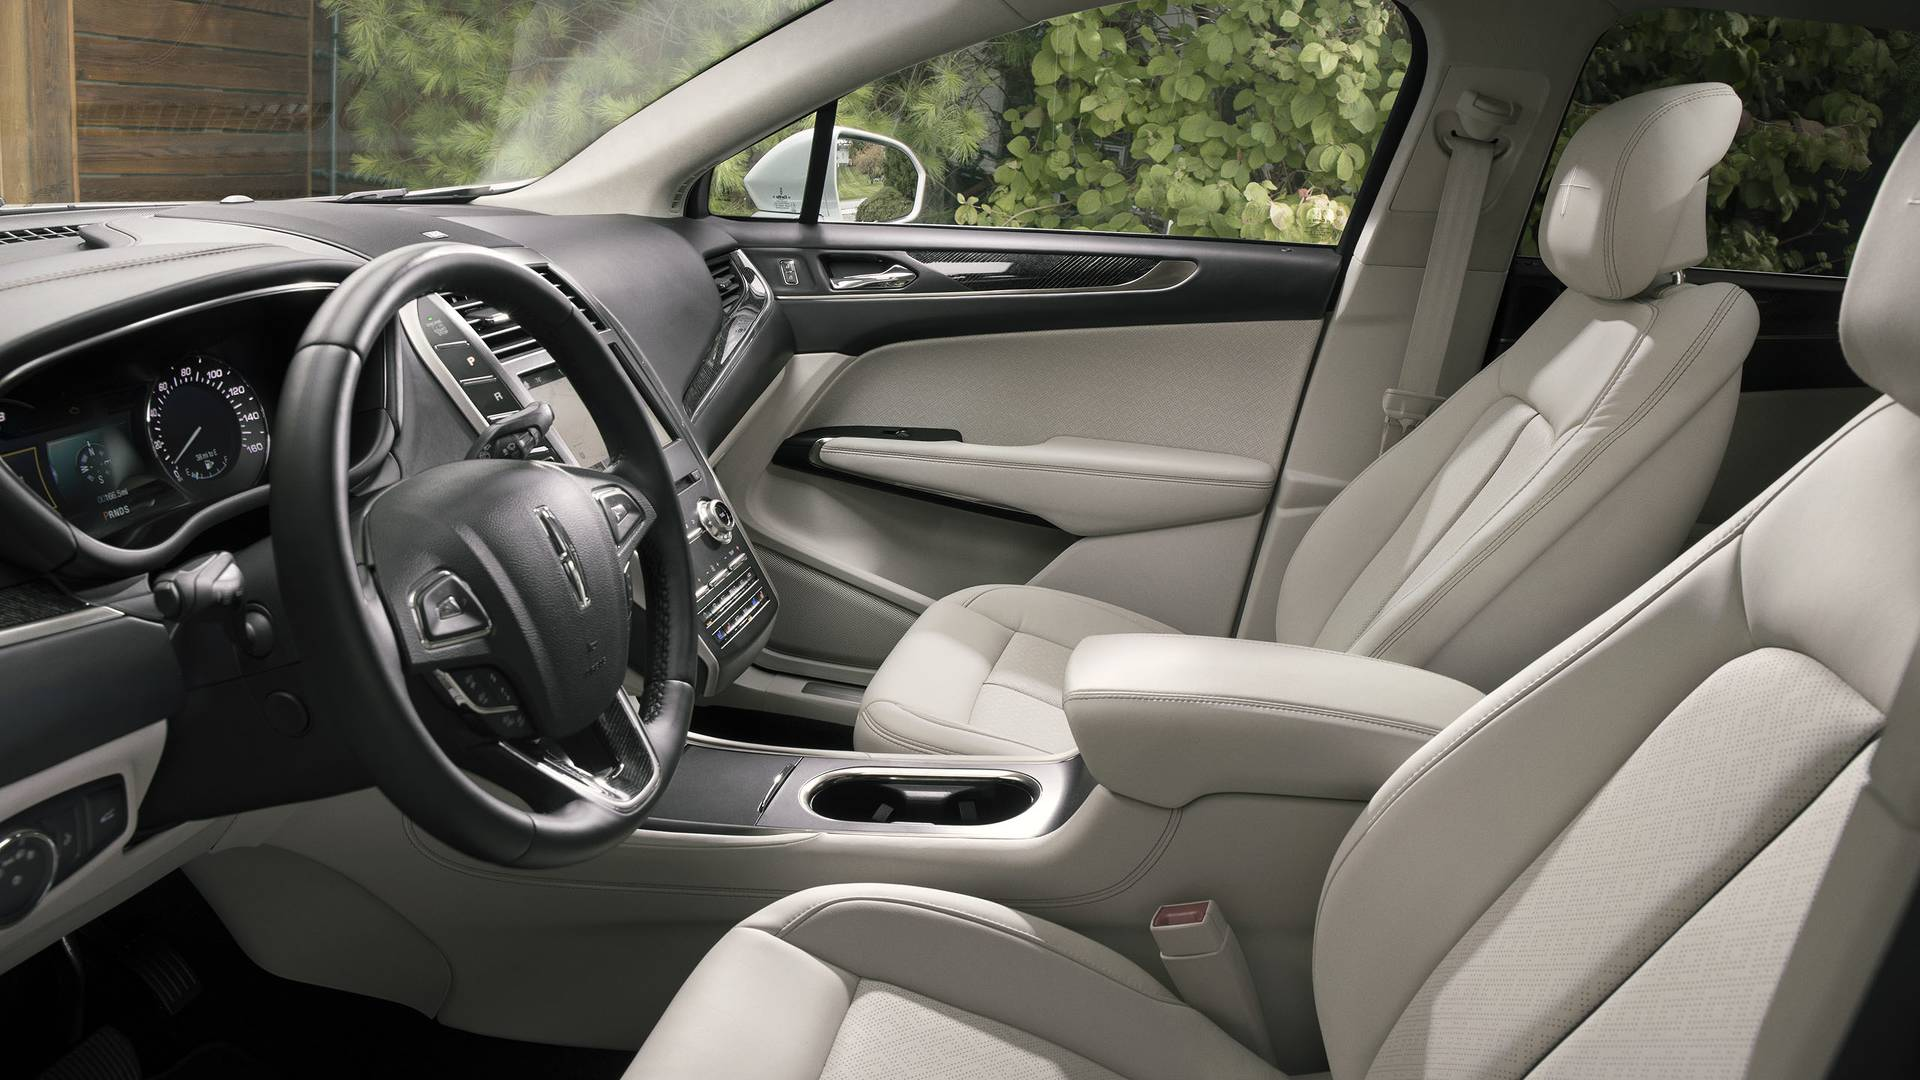 2019 Lincoln MKC Unveiled with Fresh Looks, More Tech